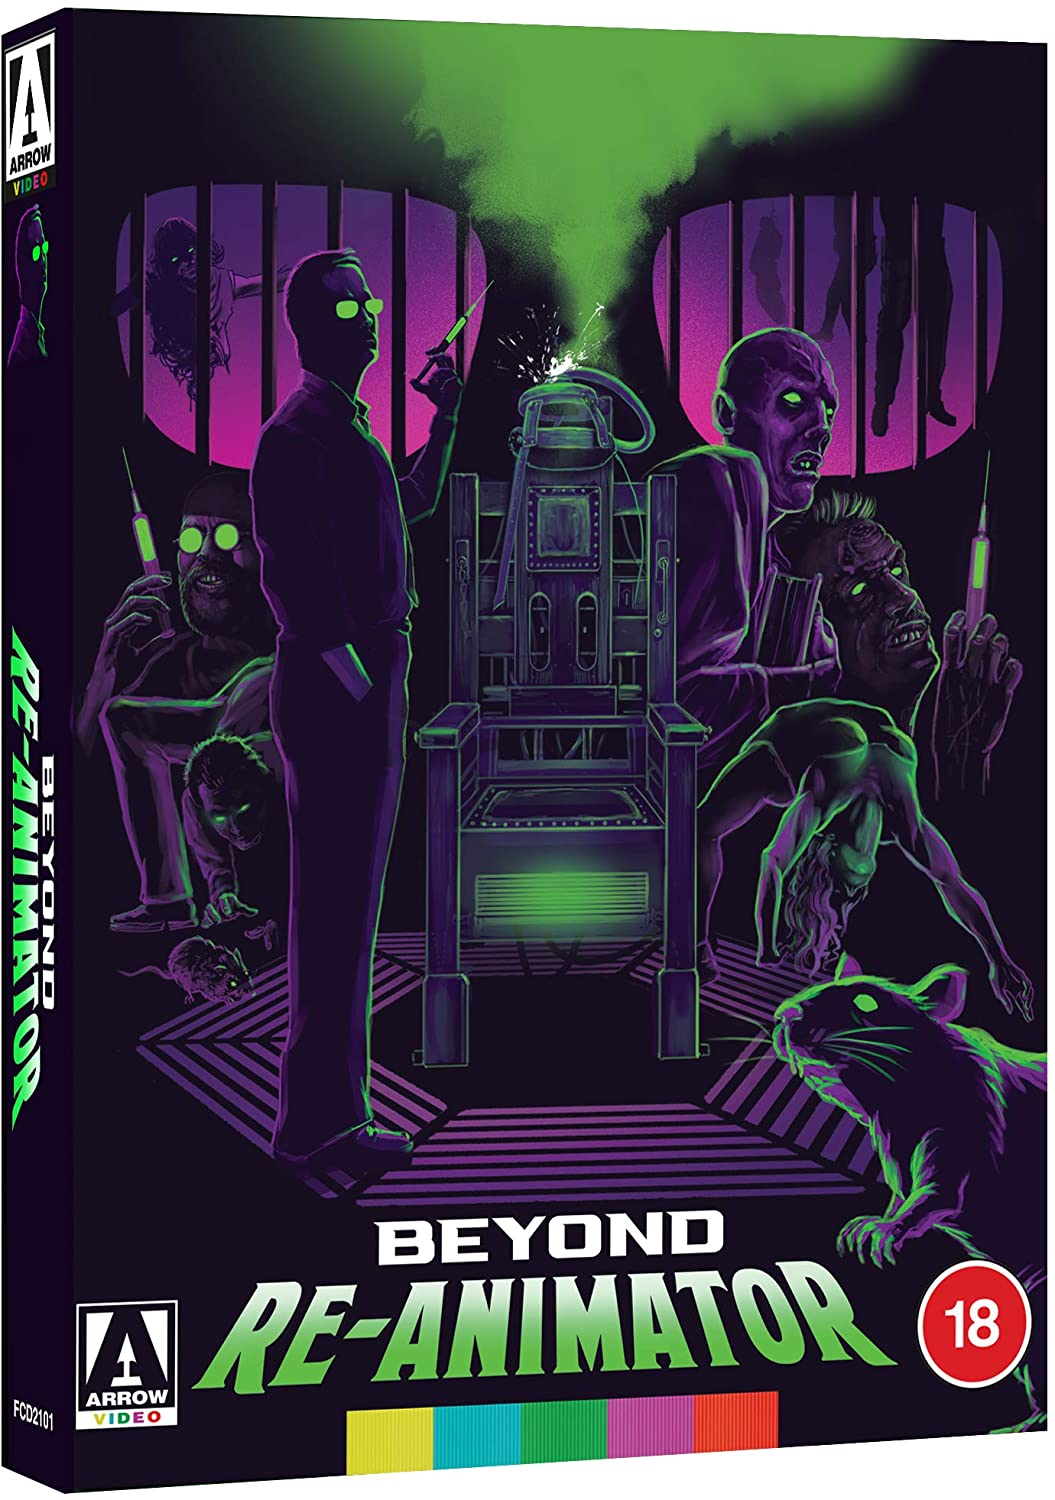 Beyond Re-Animator Arrow Video UK Blu-Ray